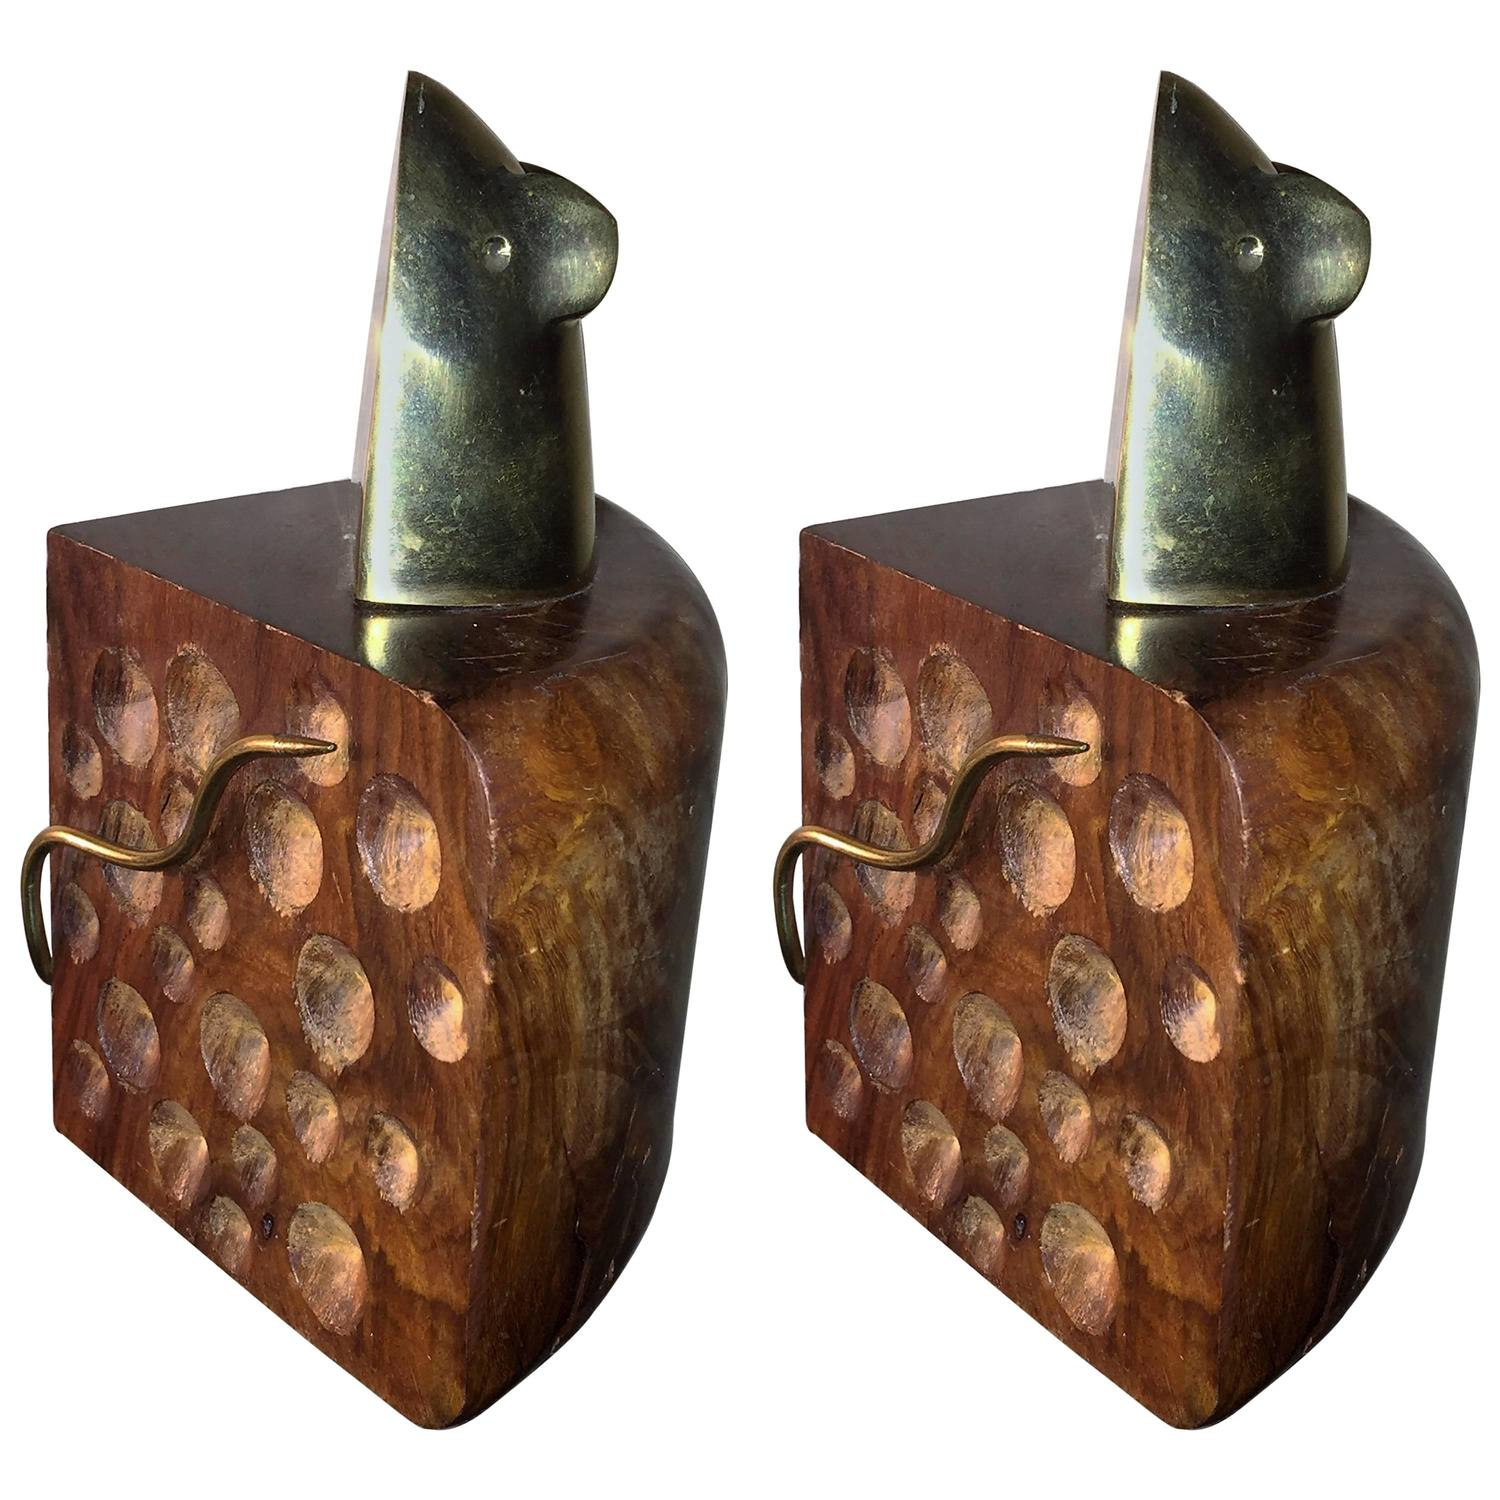 Marvelous photograph of Modernist Pair of Wood and Brass Mouse and Cheese Bookends For Sale at  with #947037 color and 1500x1500 pixels